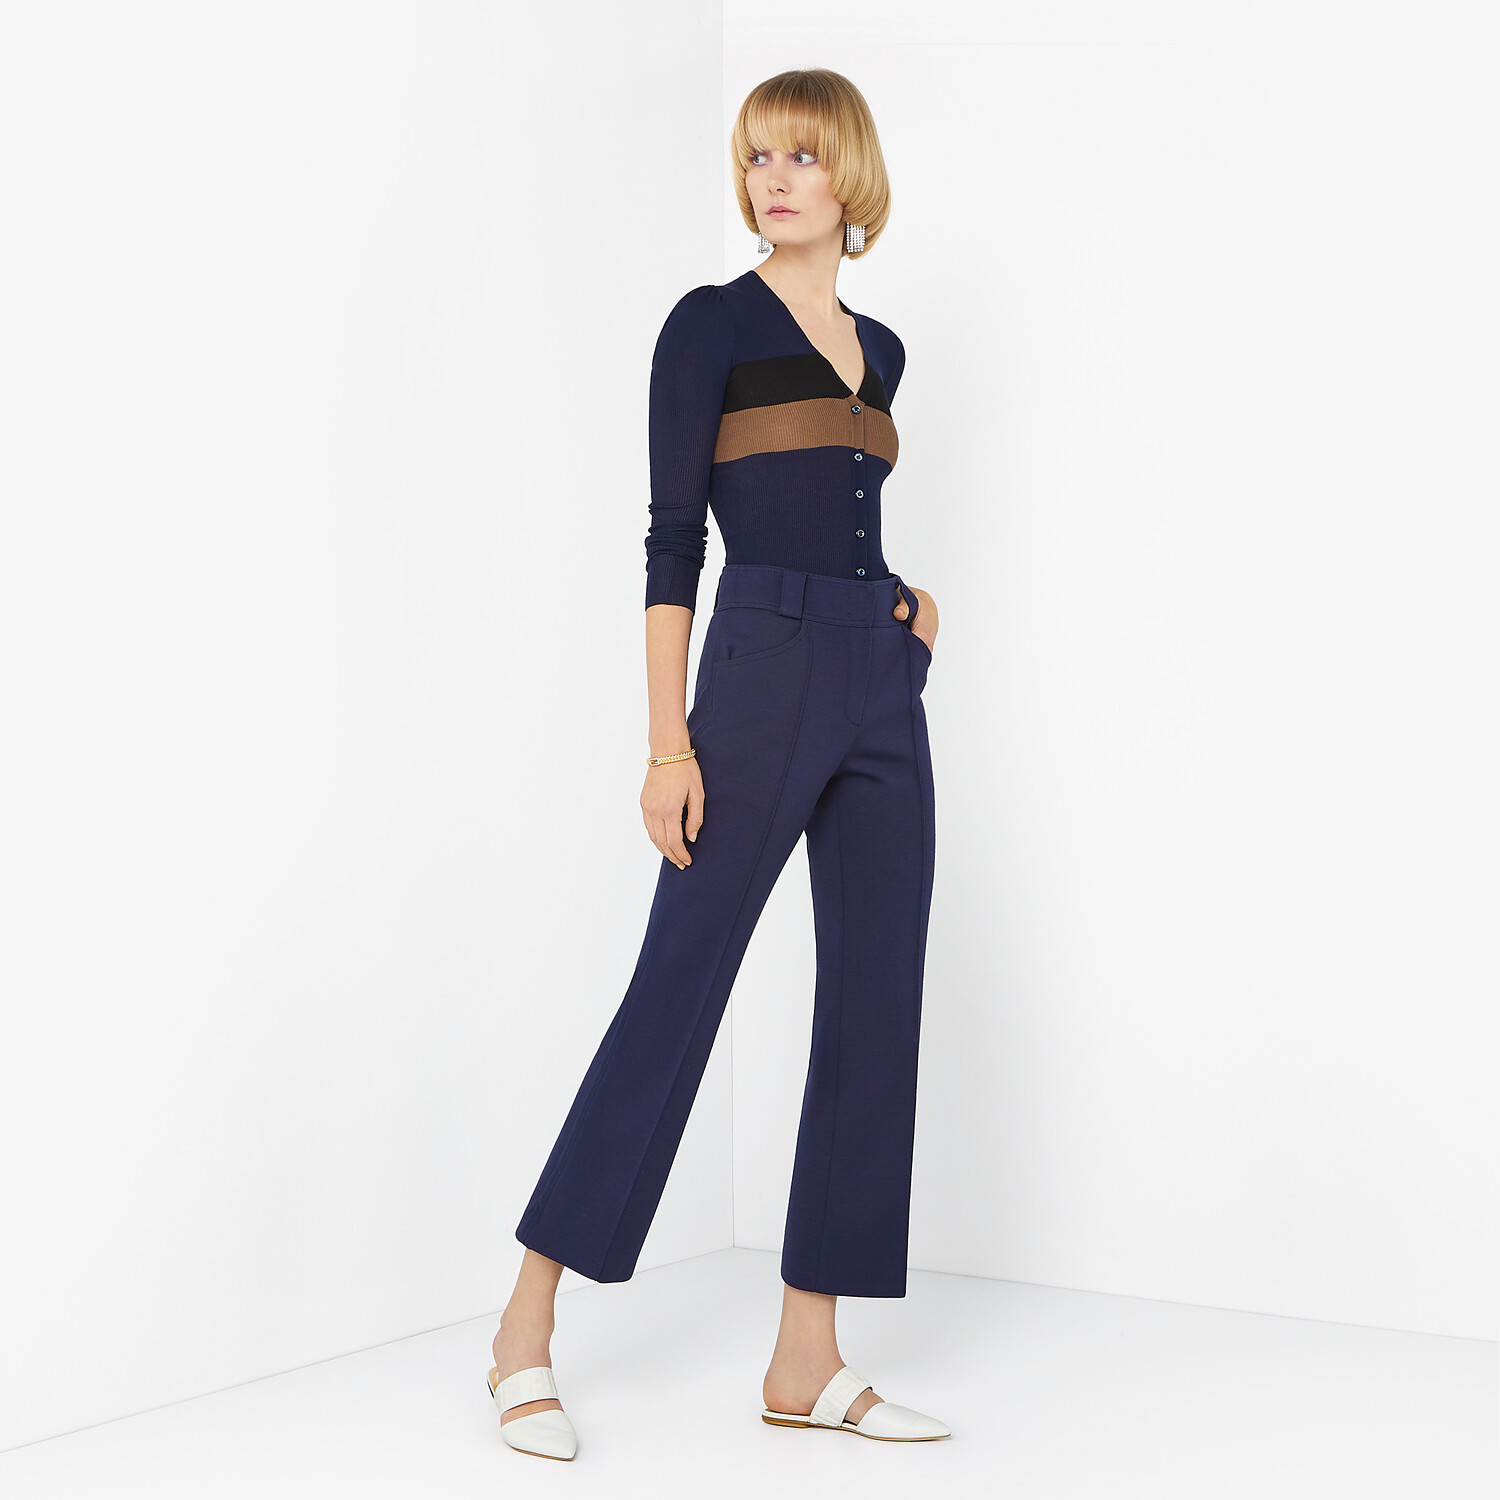 FENDI TROUSERS - Blue wool trousers - view 4 detail